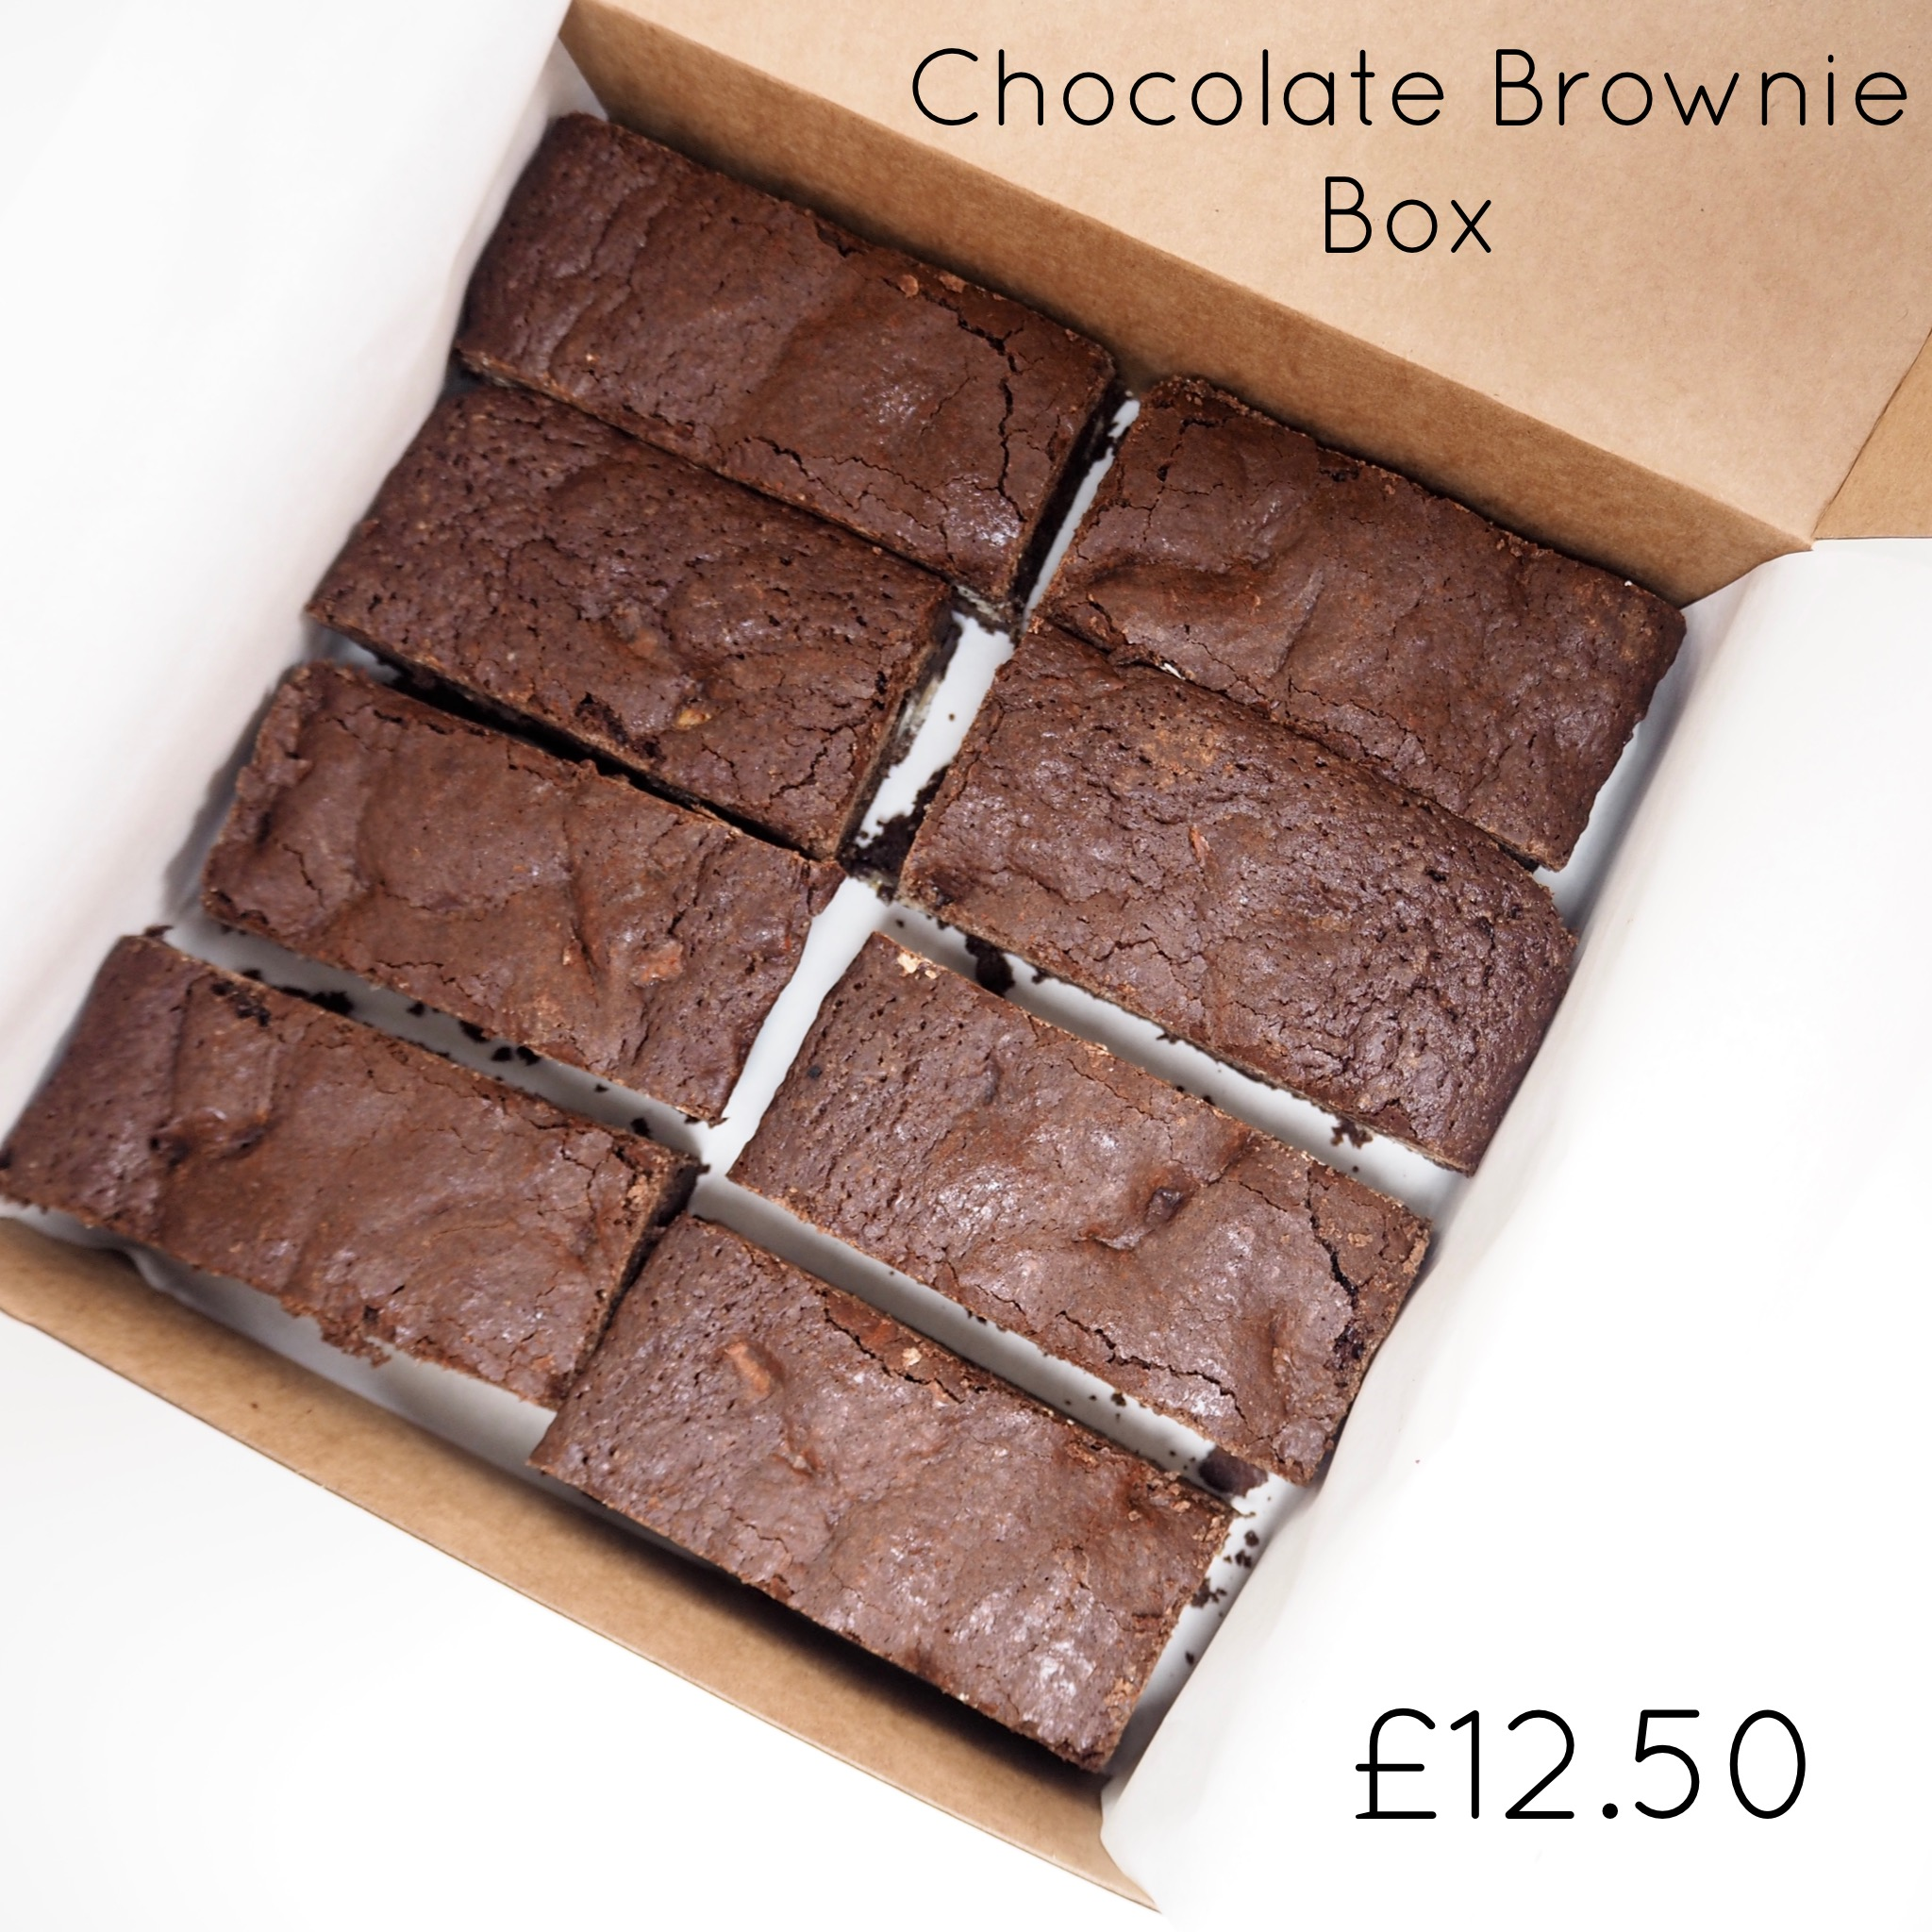 Chocolate Brownie Box